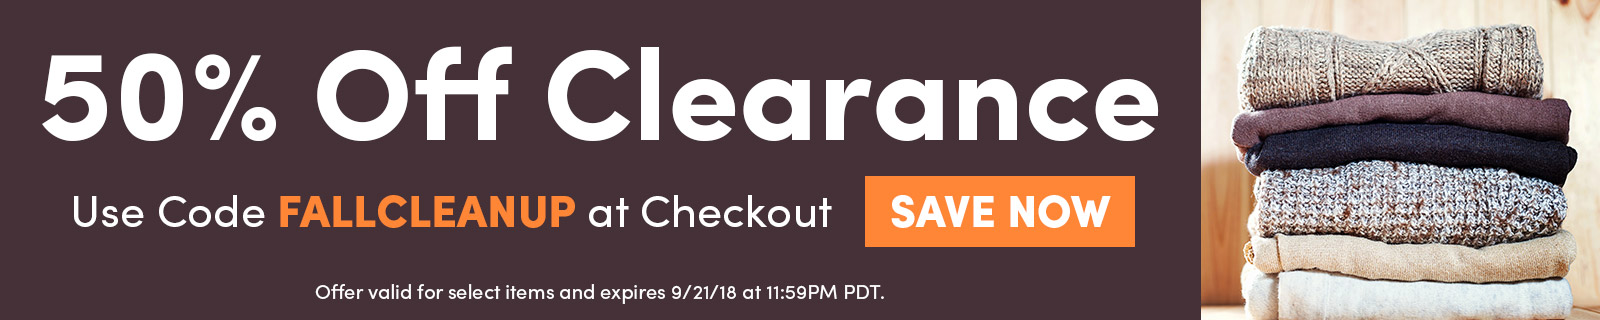 50% Off Clearance. Use Code FALLCLEANUP at Checkout. SAVE NOW